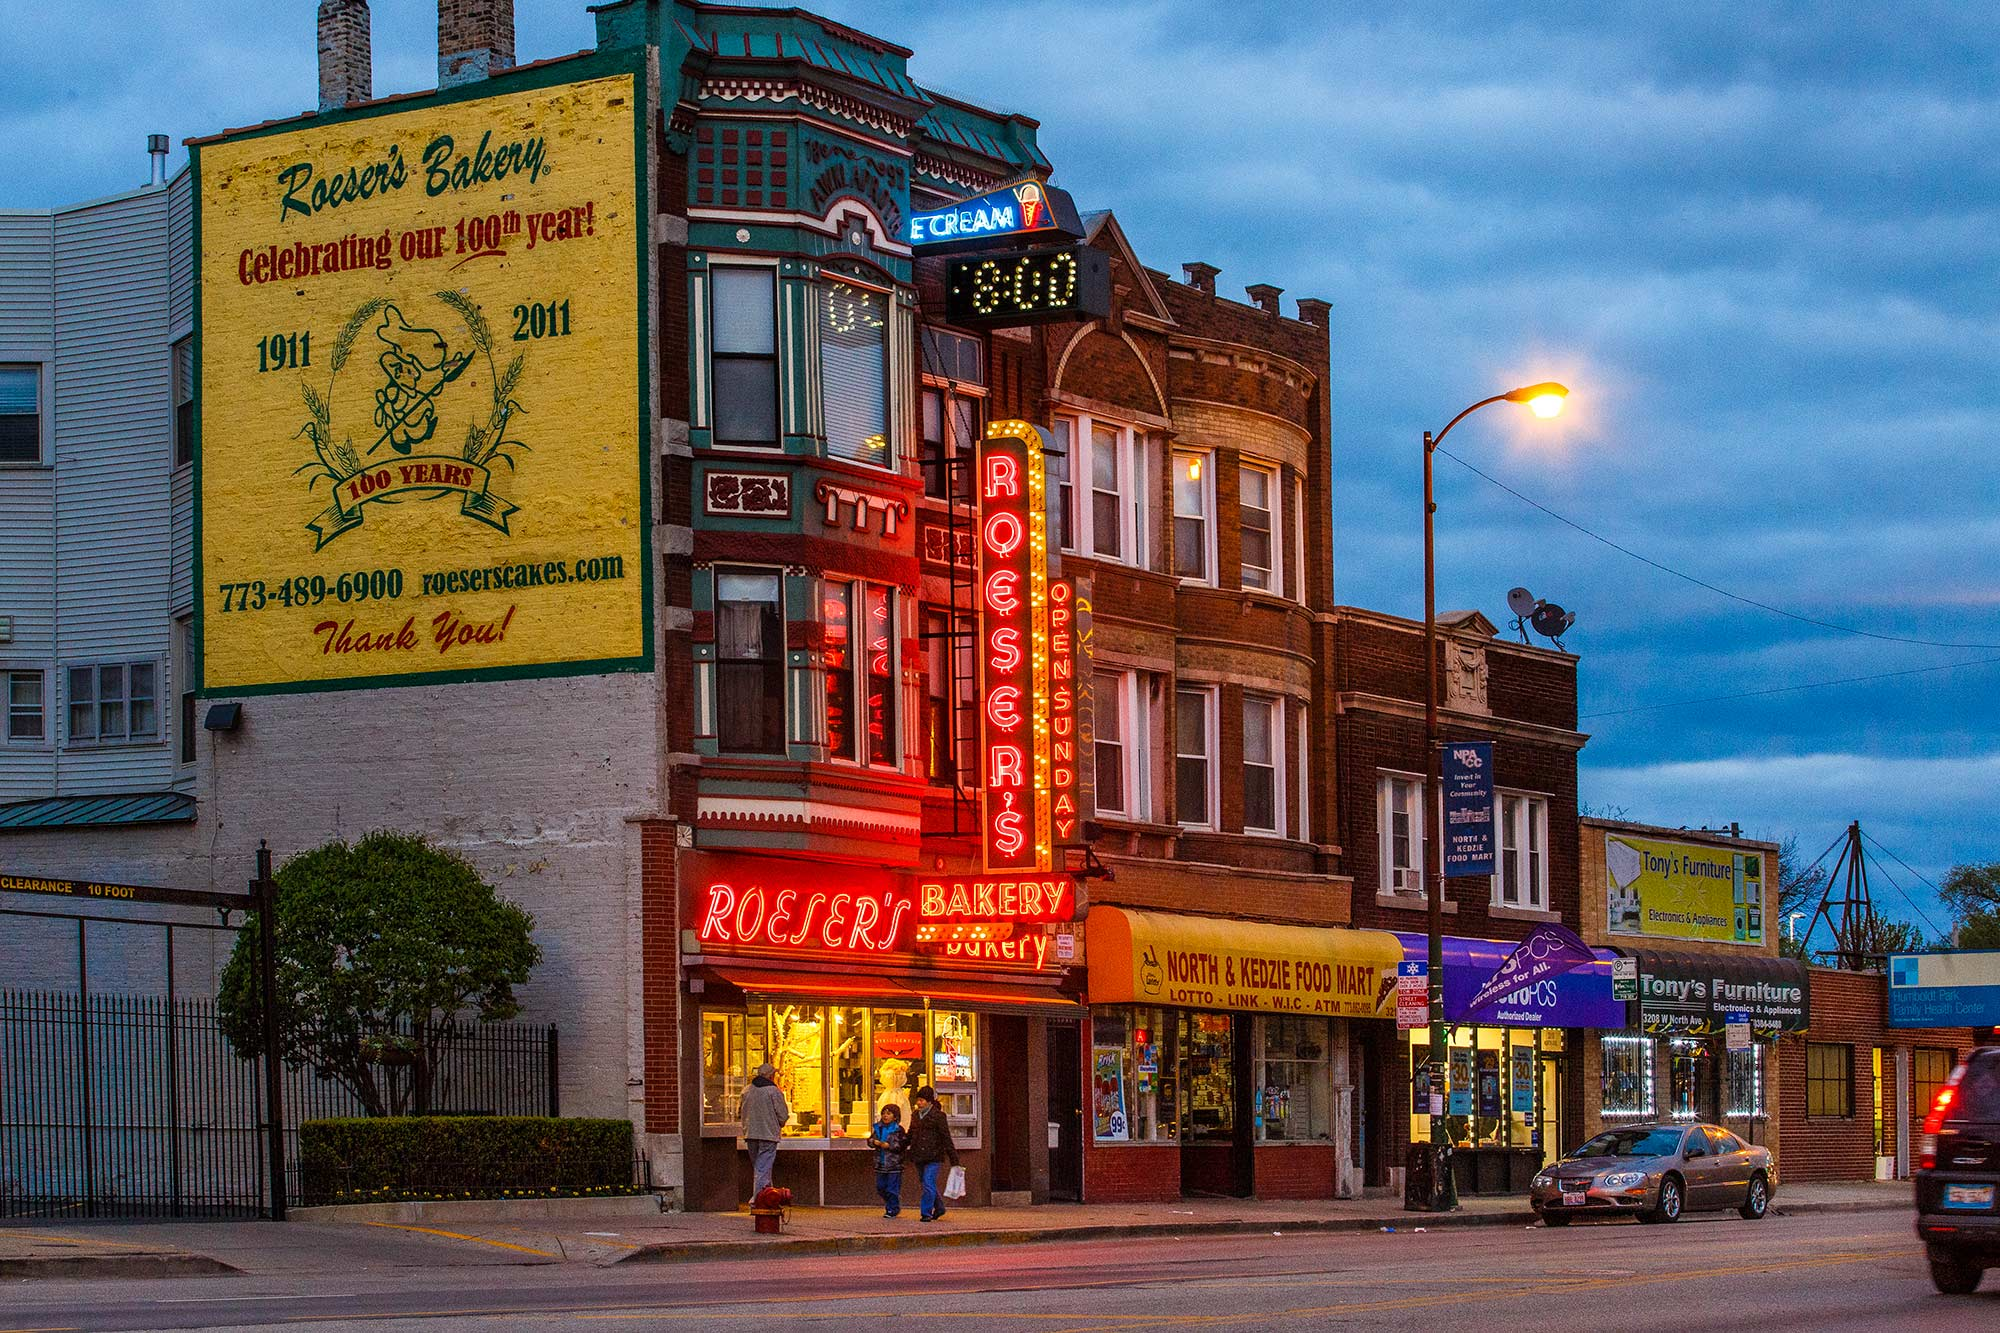 Roeser's Bakery, Chicago, IL - 5/12/15